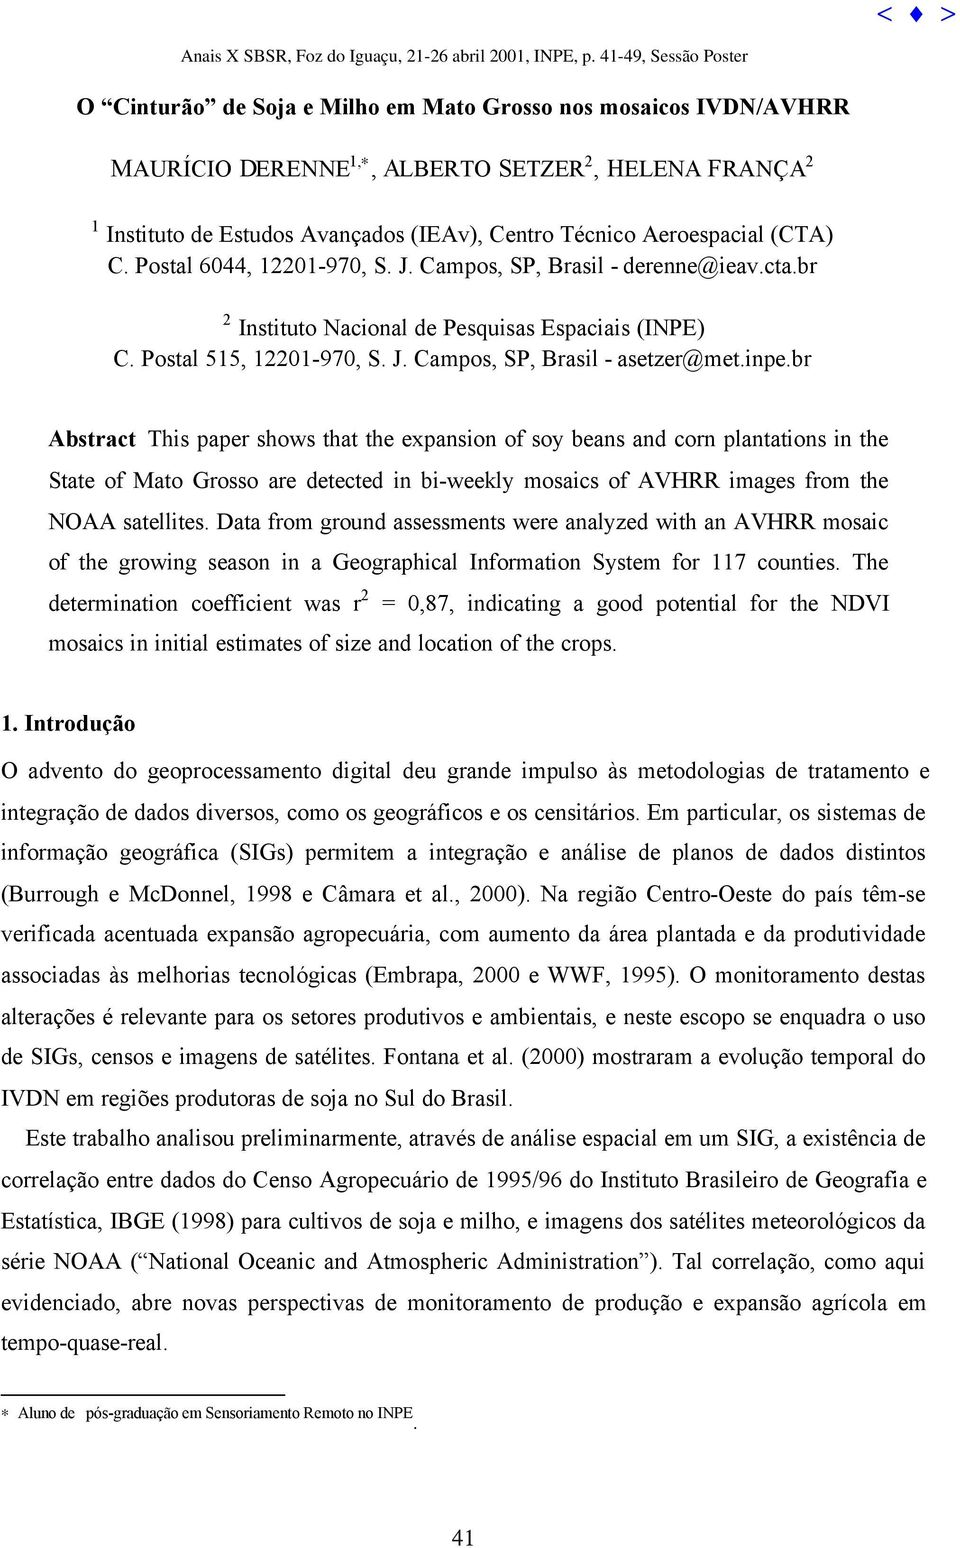 br Abstract This paper shows that the expansion of soy beans and corn plantations in the State of Mato Grosso are detected in bi-weekly mosaics of AVHRR images from the NOAA satellites.